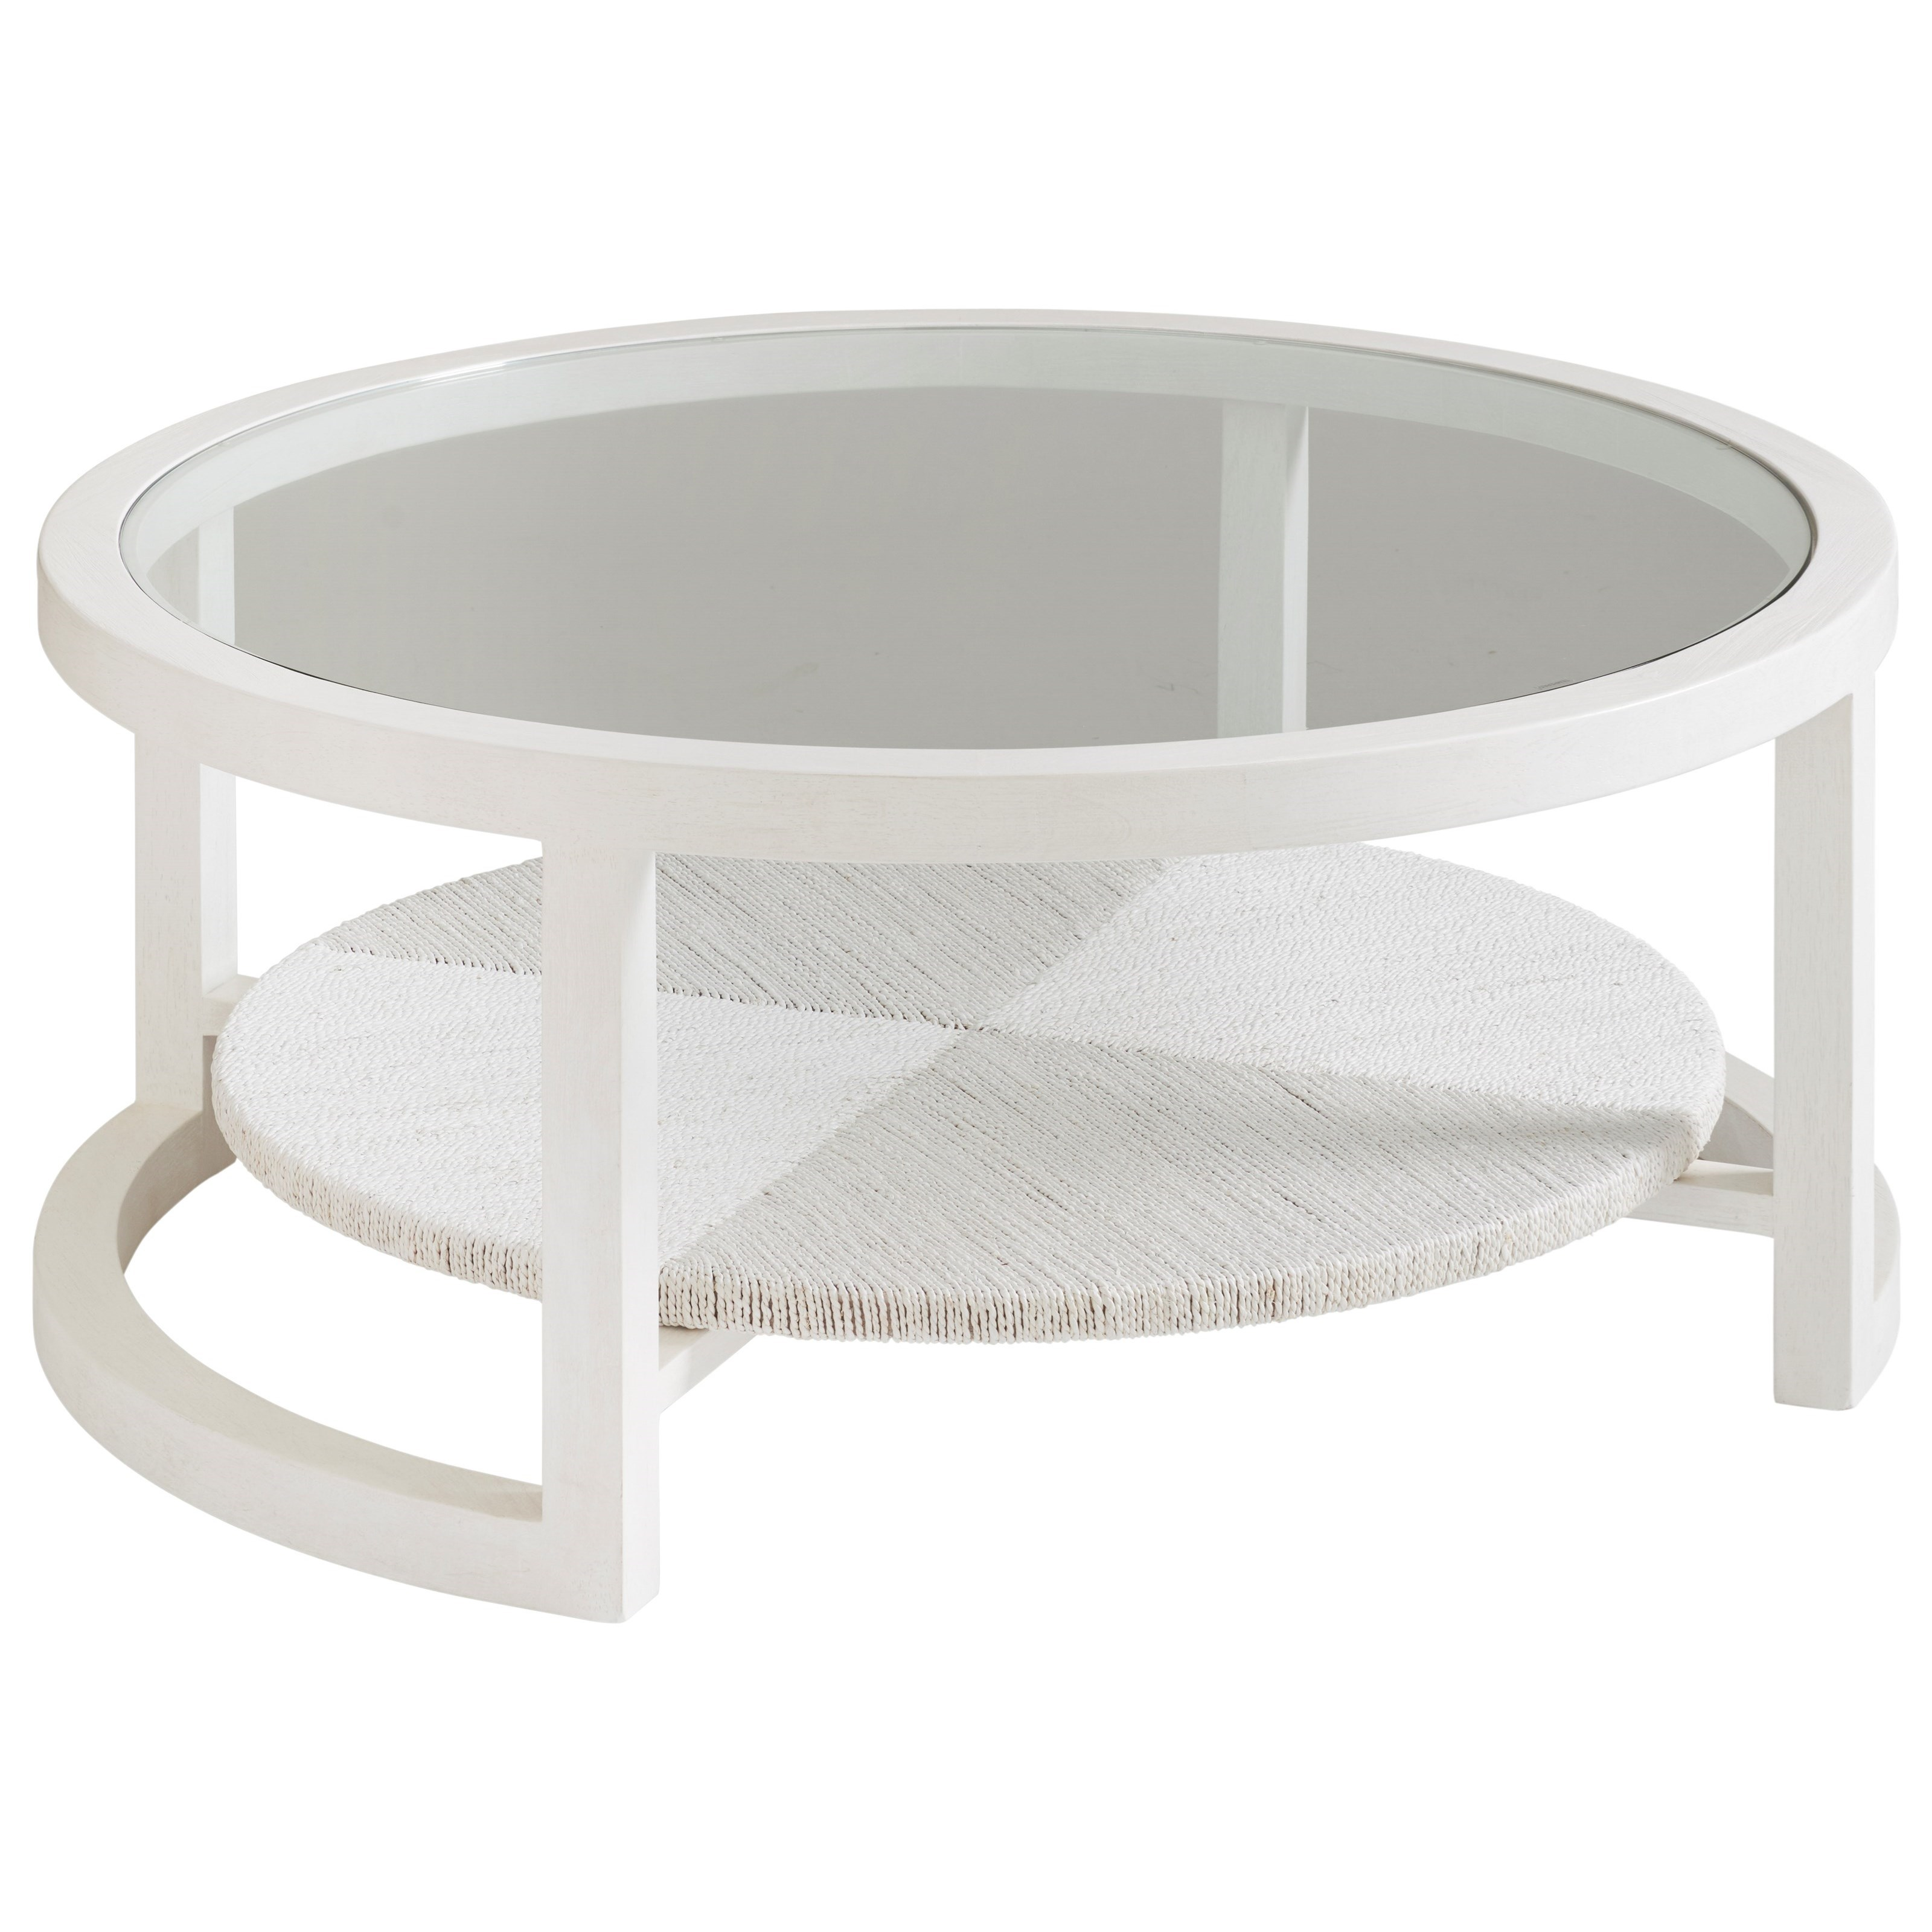 Ocean Breeze Pompano Round Cocktail Table by Tommy Bahama Home at C. S. Wo & Sons Hawaii